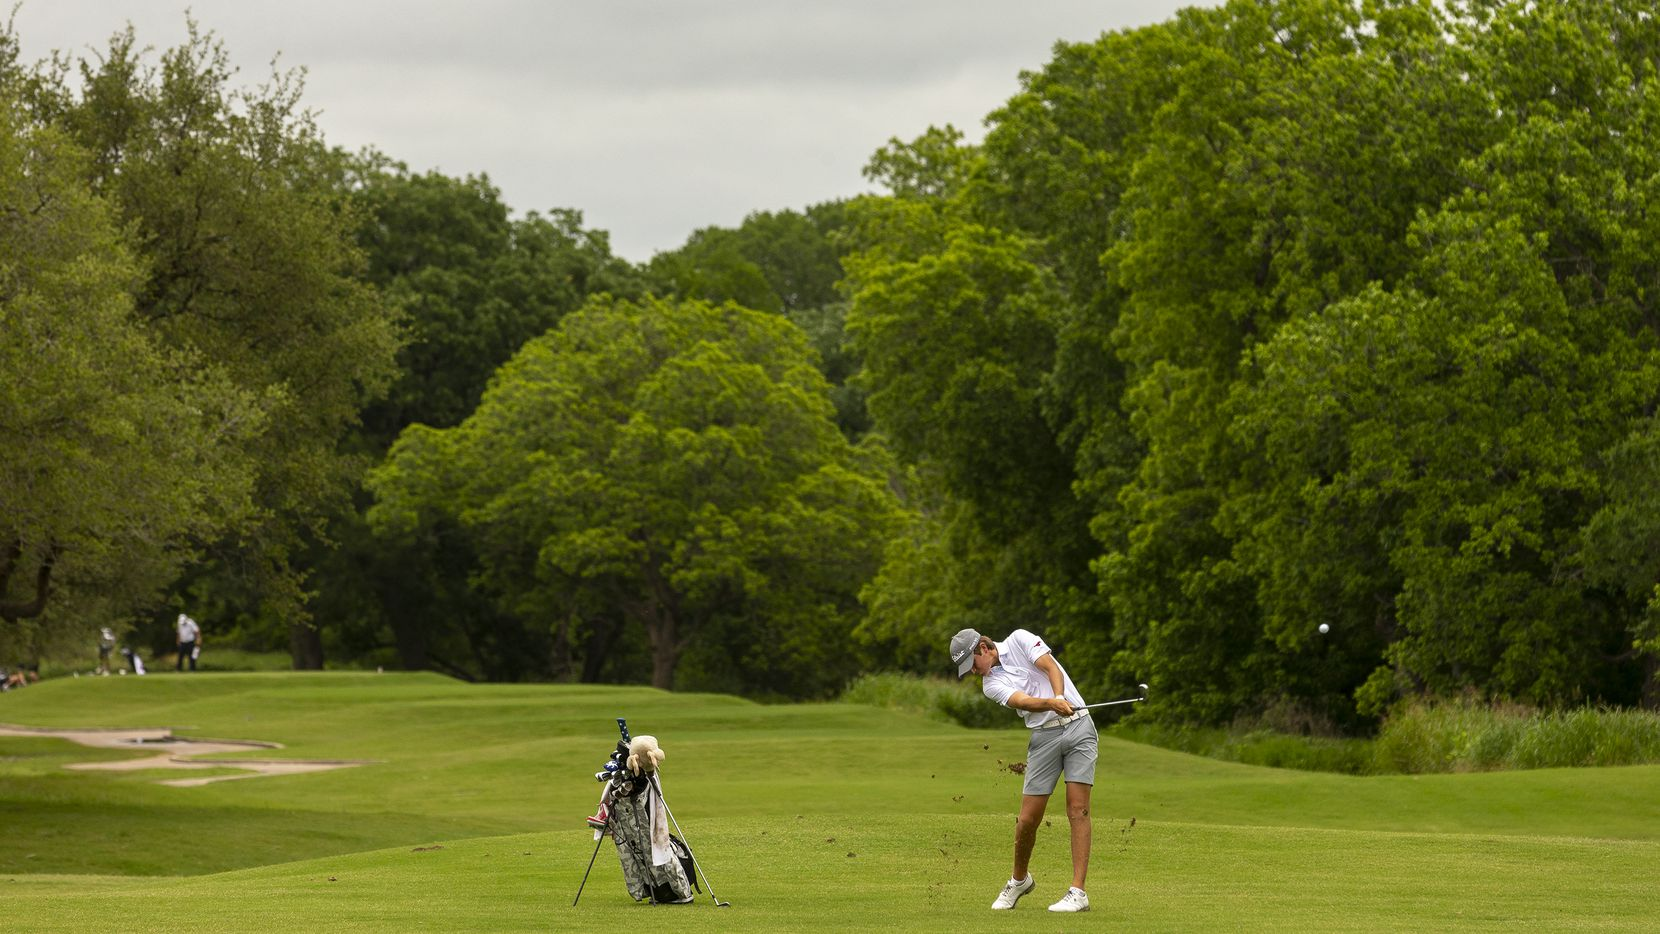 JJ PearceÕs Preston Stout hits from the fairway on the 14th hole during the final round of the UIL Class 6A boys golf tournament in Georgetown, Tuesday, May 18, 2021. (Stephen Spillman/Special Contributor)